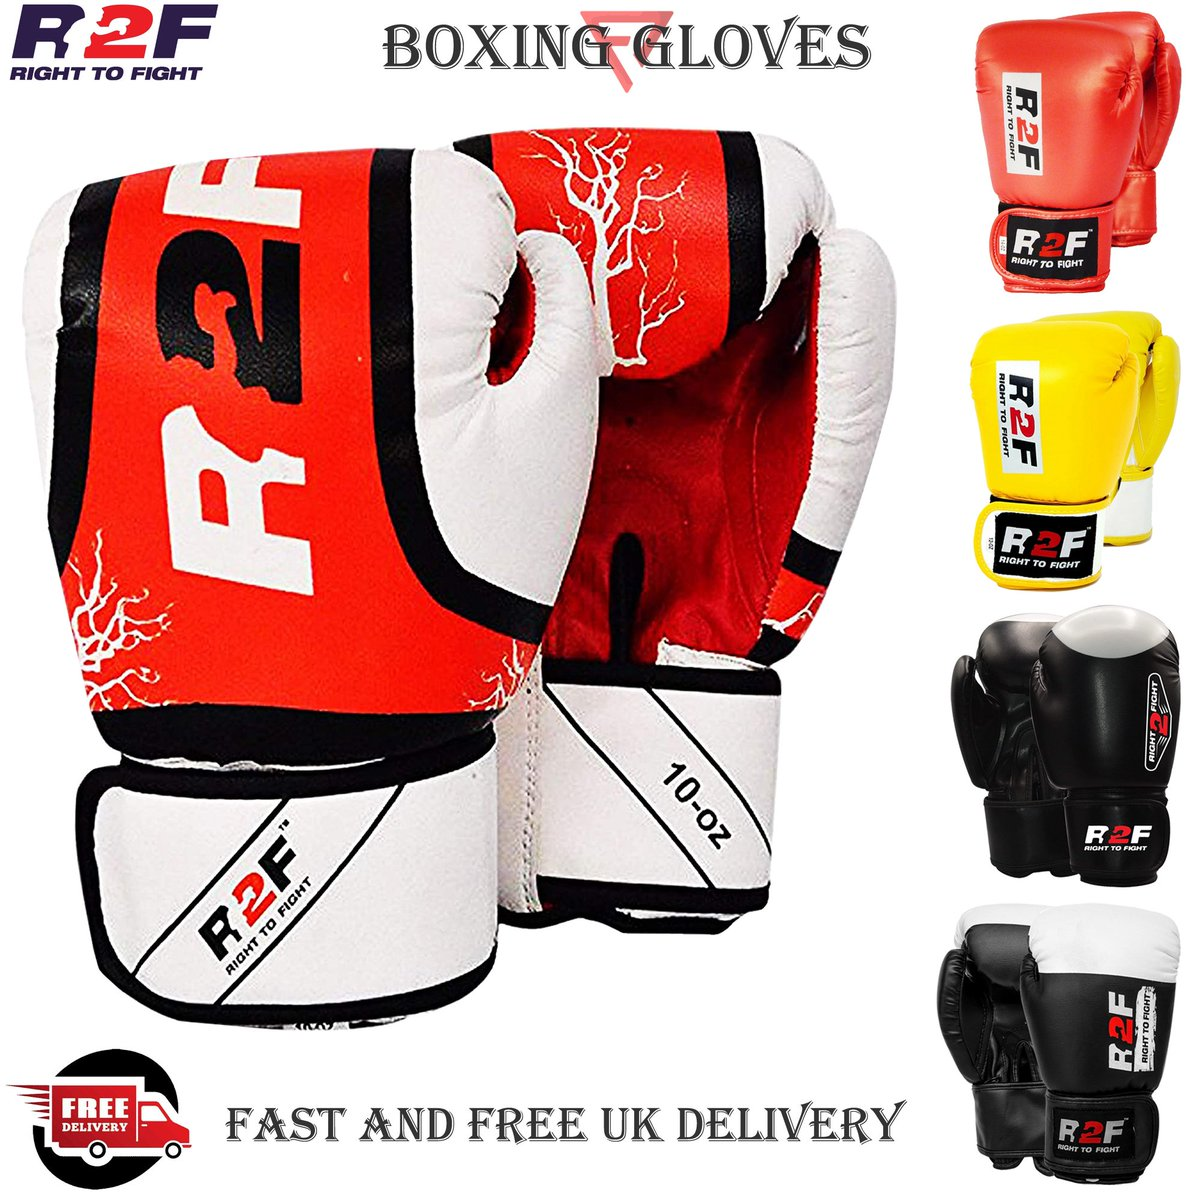 Do you Want Best Boxing Gloves? Then You Must Try These. #R2F #Righttofight #Boxing #Gloves #Training #Muay #Thai #Sparring #Fighting #Focus #Pads #Punch #Bag #Mitts #Martial #Arts #Workout #Gloves #Men #Women #Exercise #UK Click on the Link https://t.co/NKFfOCOF3g https://t.co/koLoJEPKmT